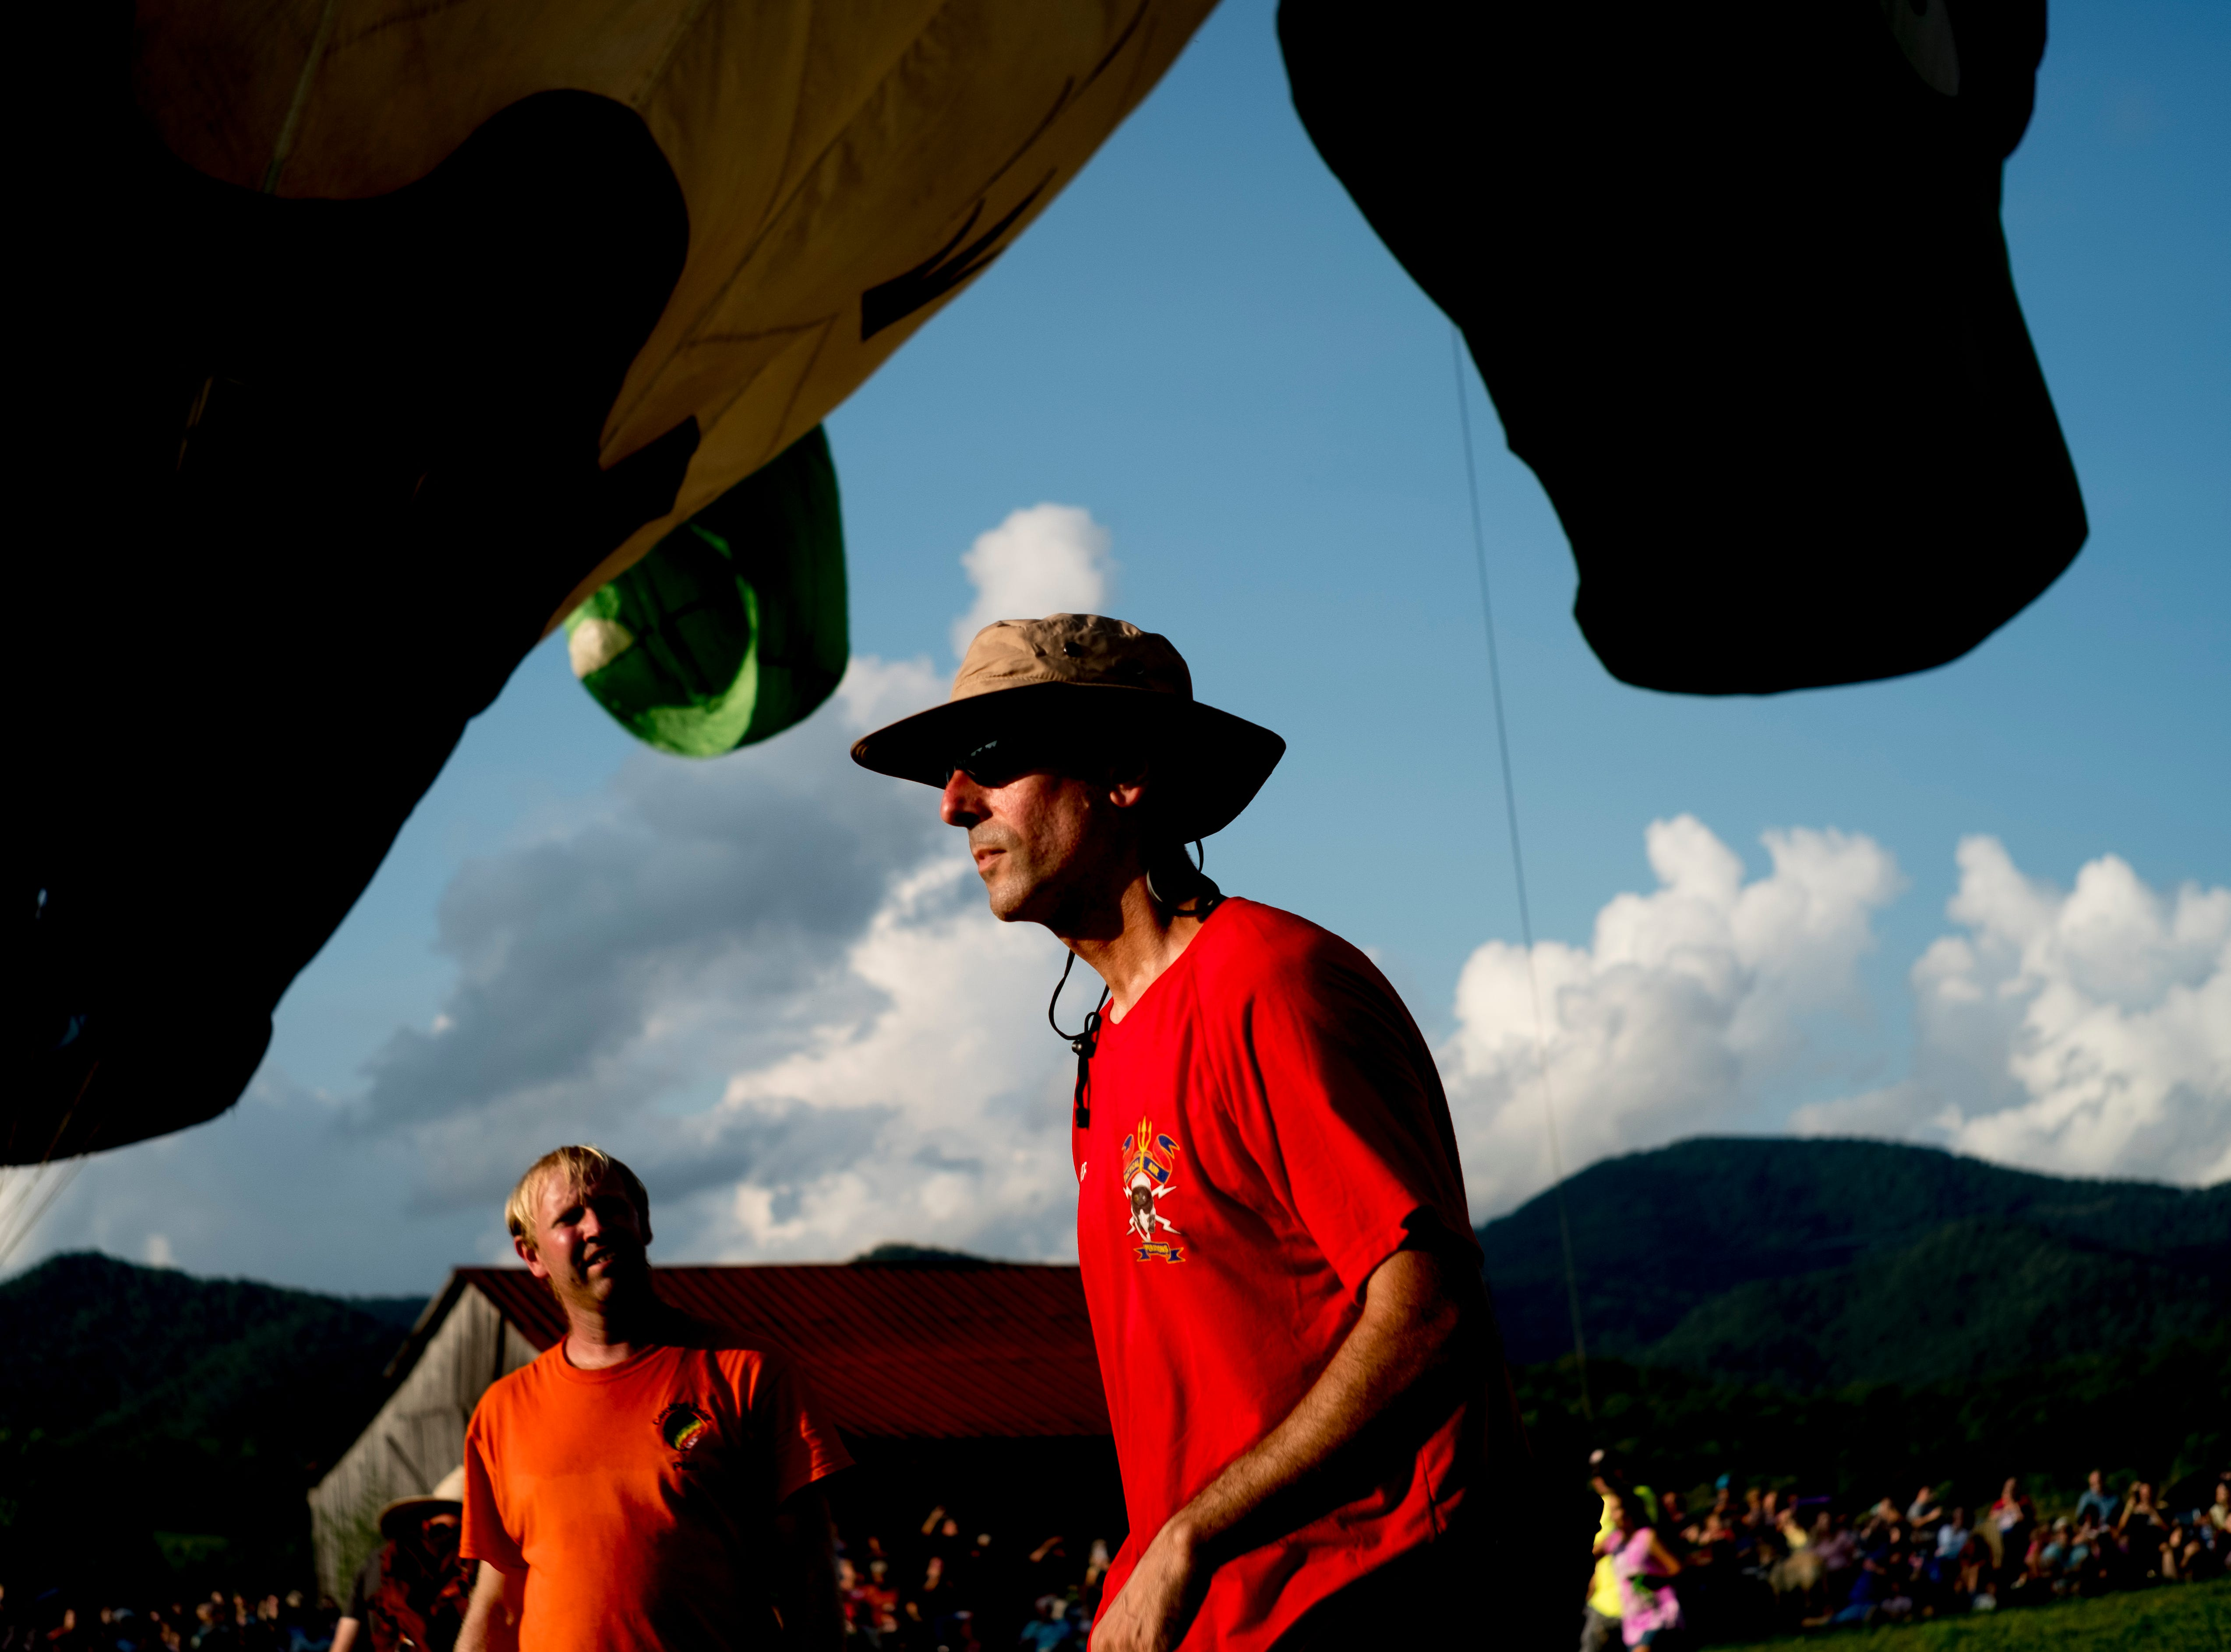 Festival team members work to inflate the hot air balloons at the second annual Smoky Mountain Balloon Festival in Townsend, Tennessee on Saturday, August 18, 2018. The festival featured several hot air balloons, food trucks, wine tasting and live entertainment.